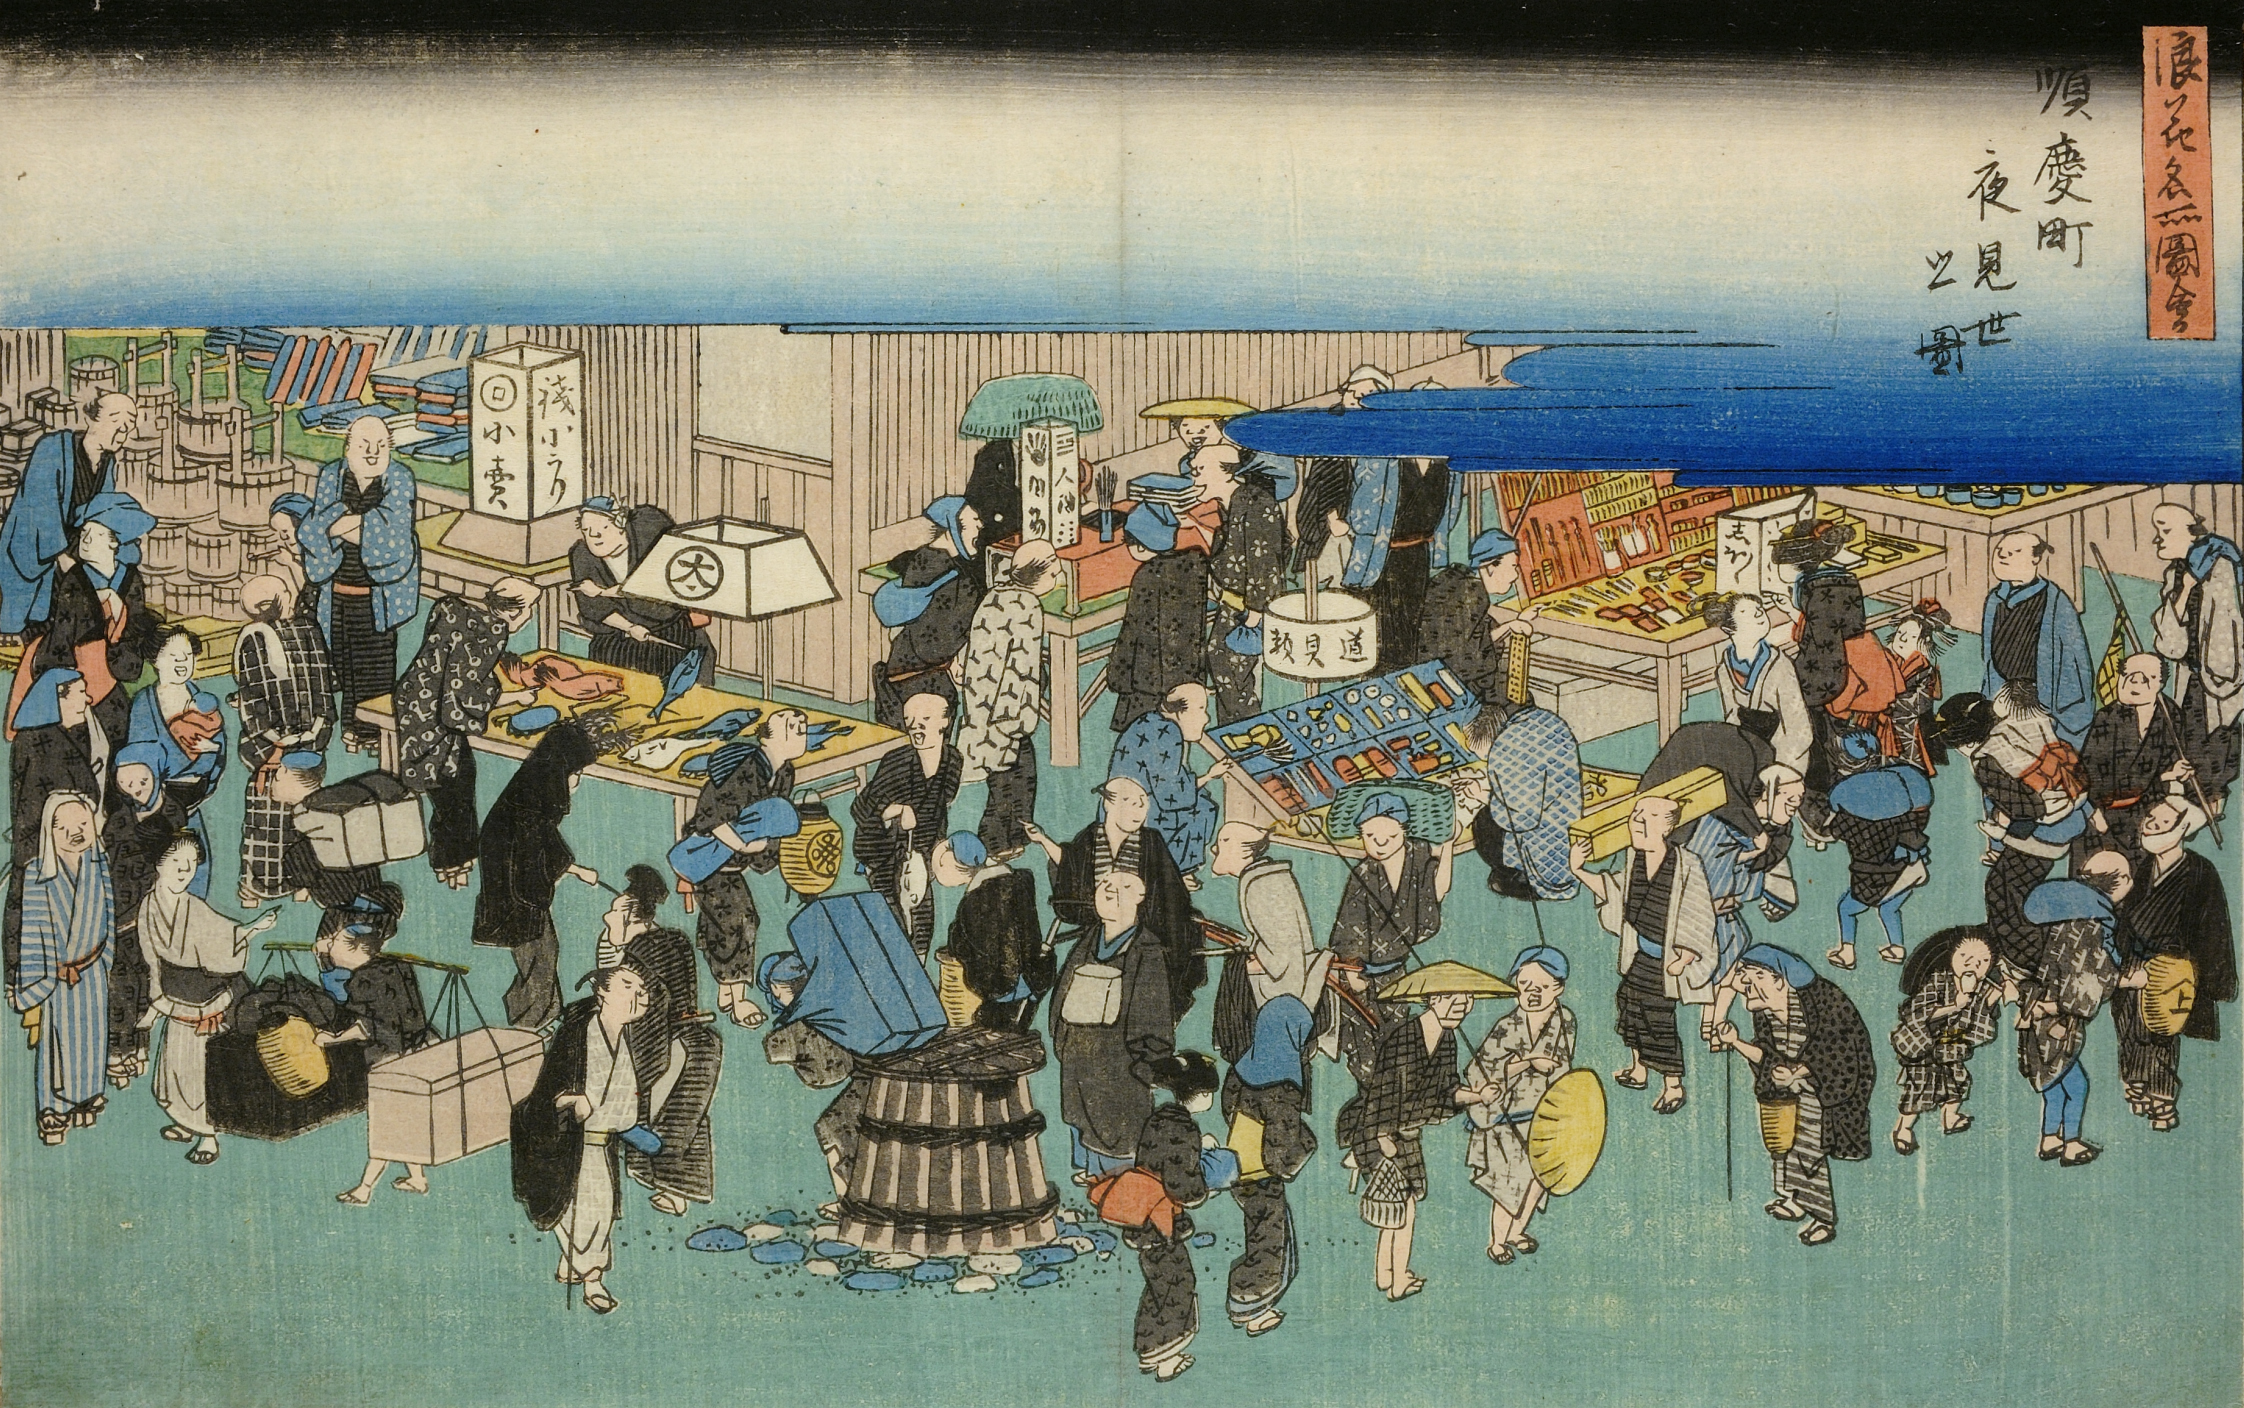 A colour woodblock print showing an evening market scene in Osaka, bustling with shoppers.